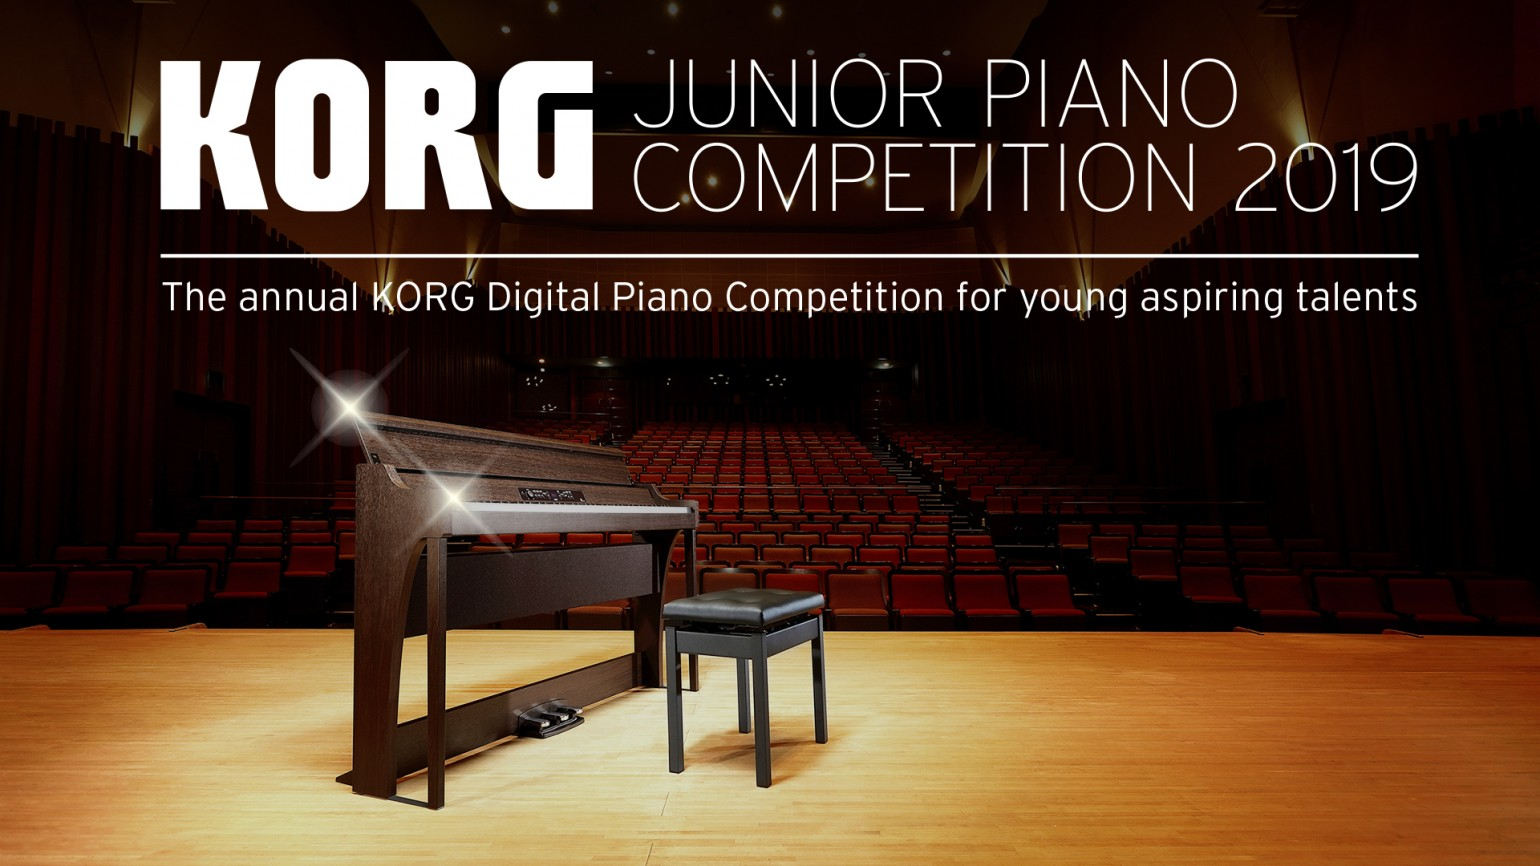 Korg Junior Piano Competition 2019 Banner